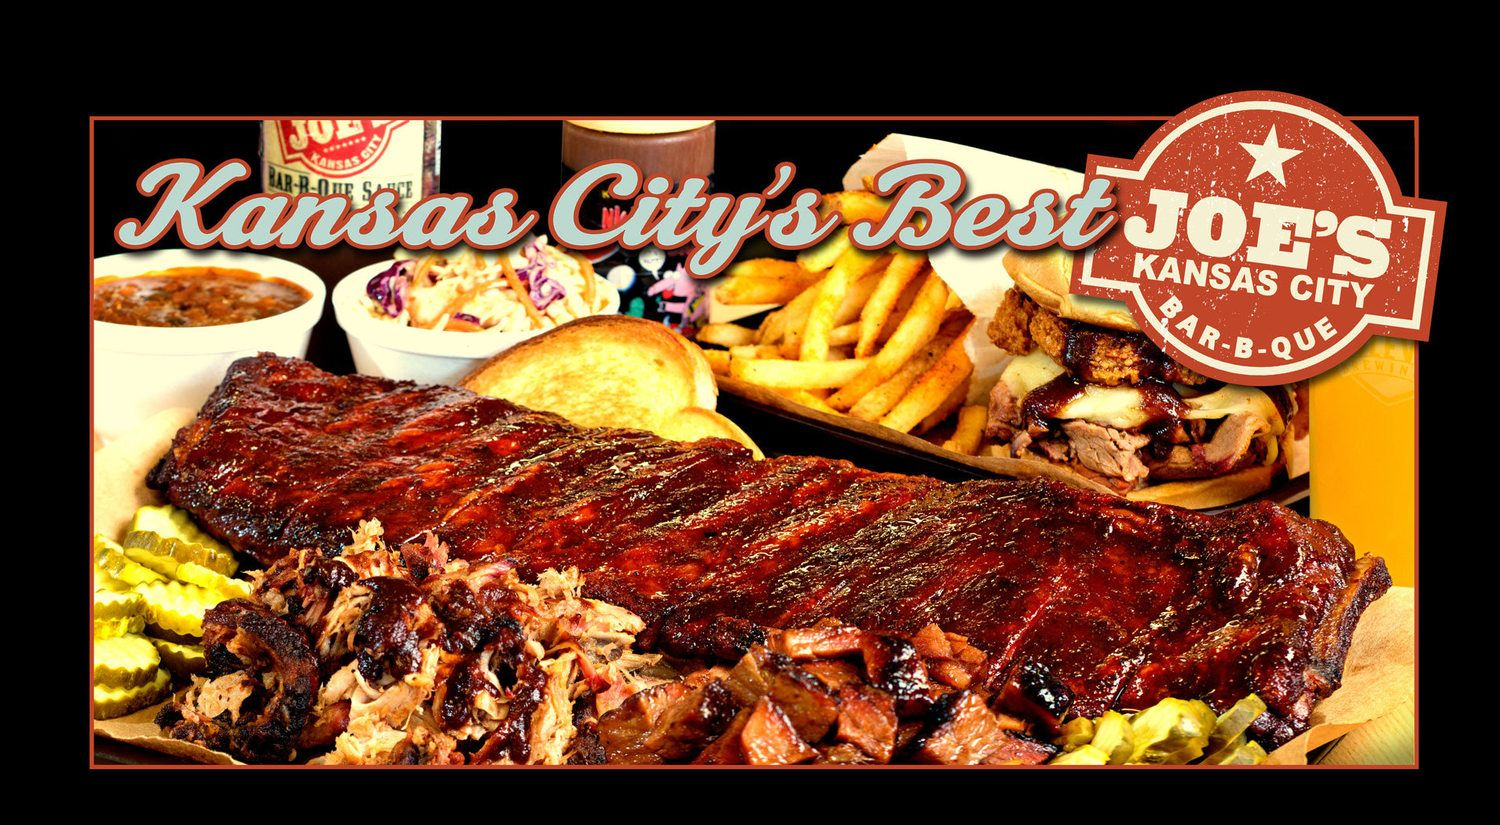 Joe S Bbq Kc S Best Kansas City Bars Joe S Kansas City Bbq Bbq Kansas City